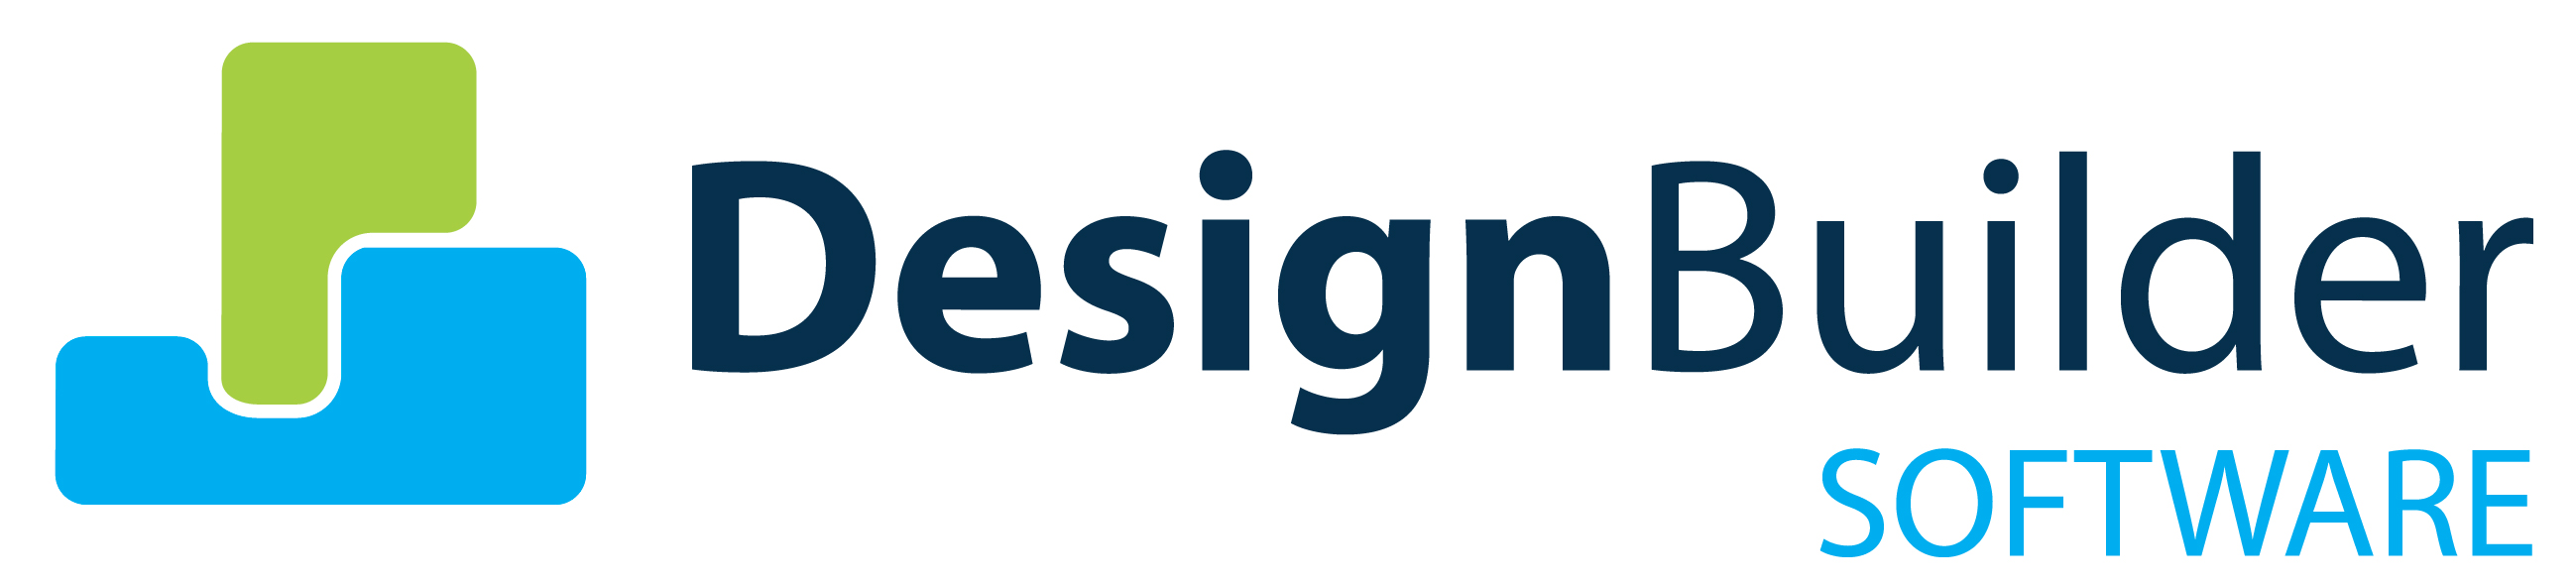 Version 4 Of DesignBuilder Released Tailored For